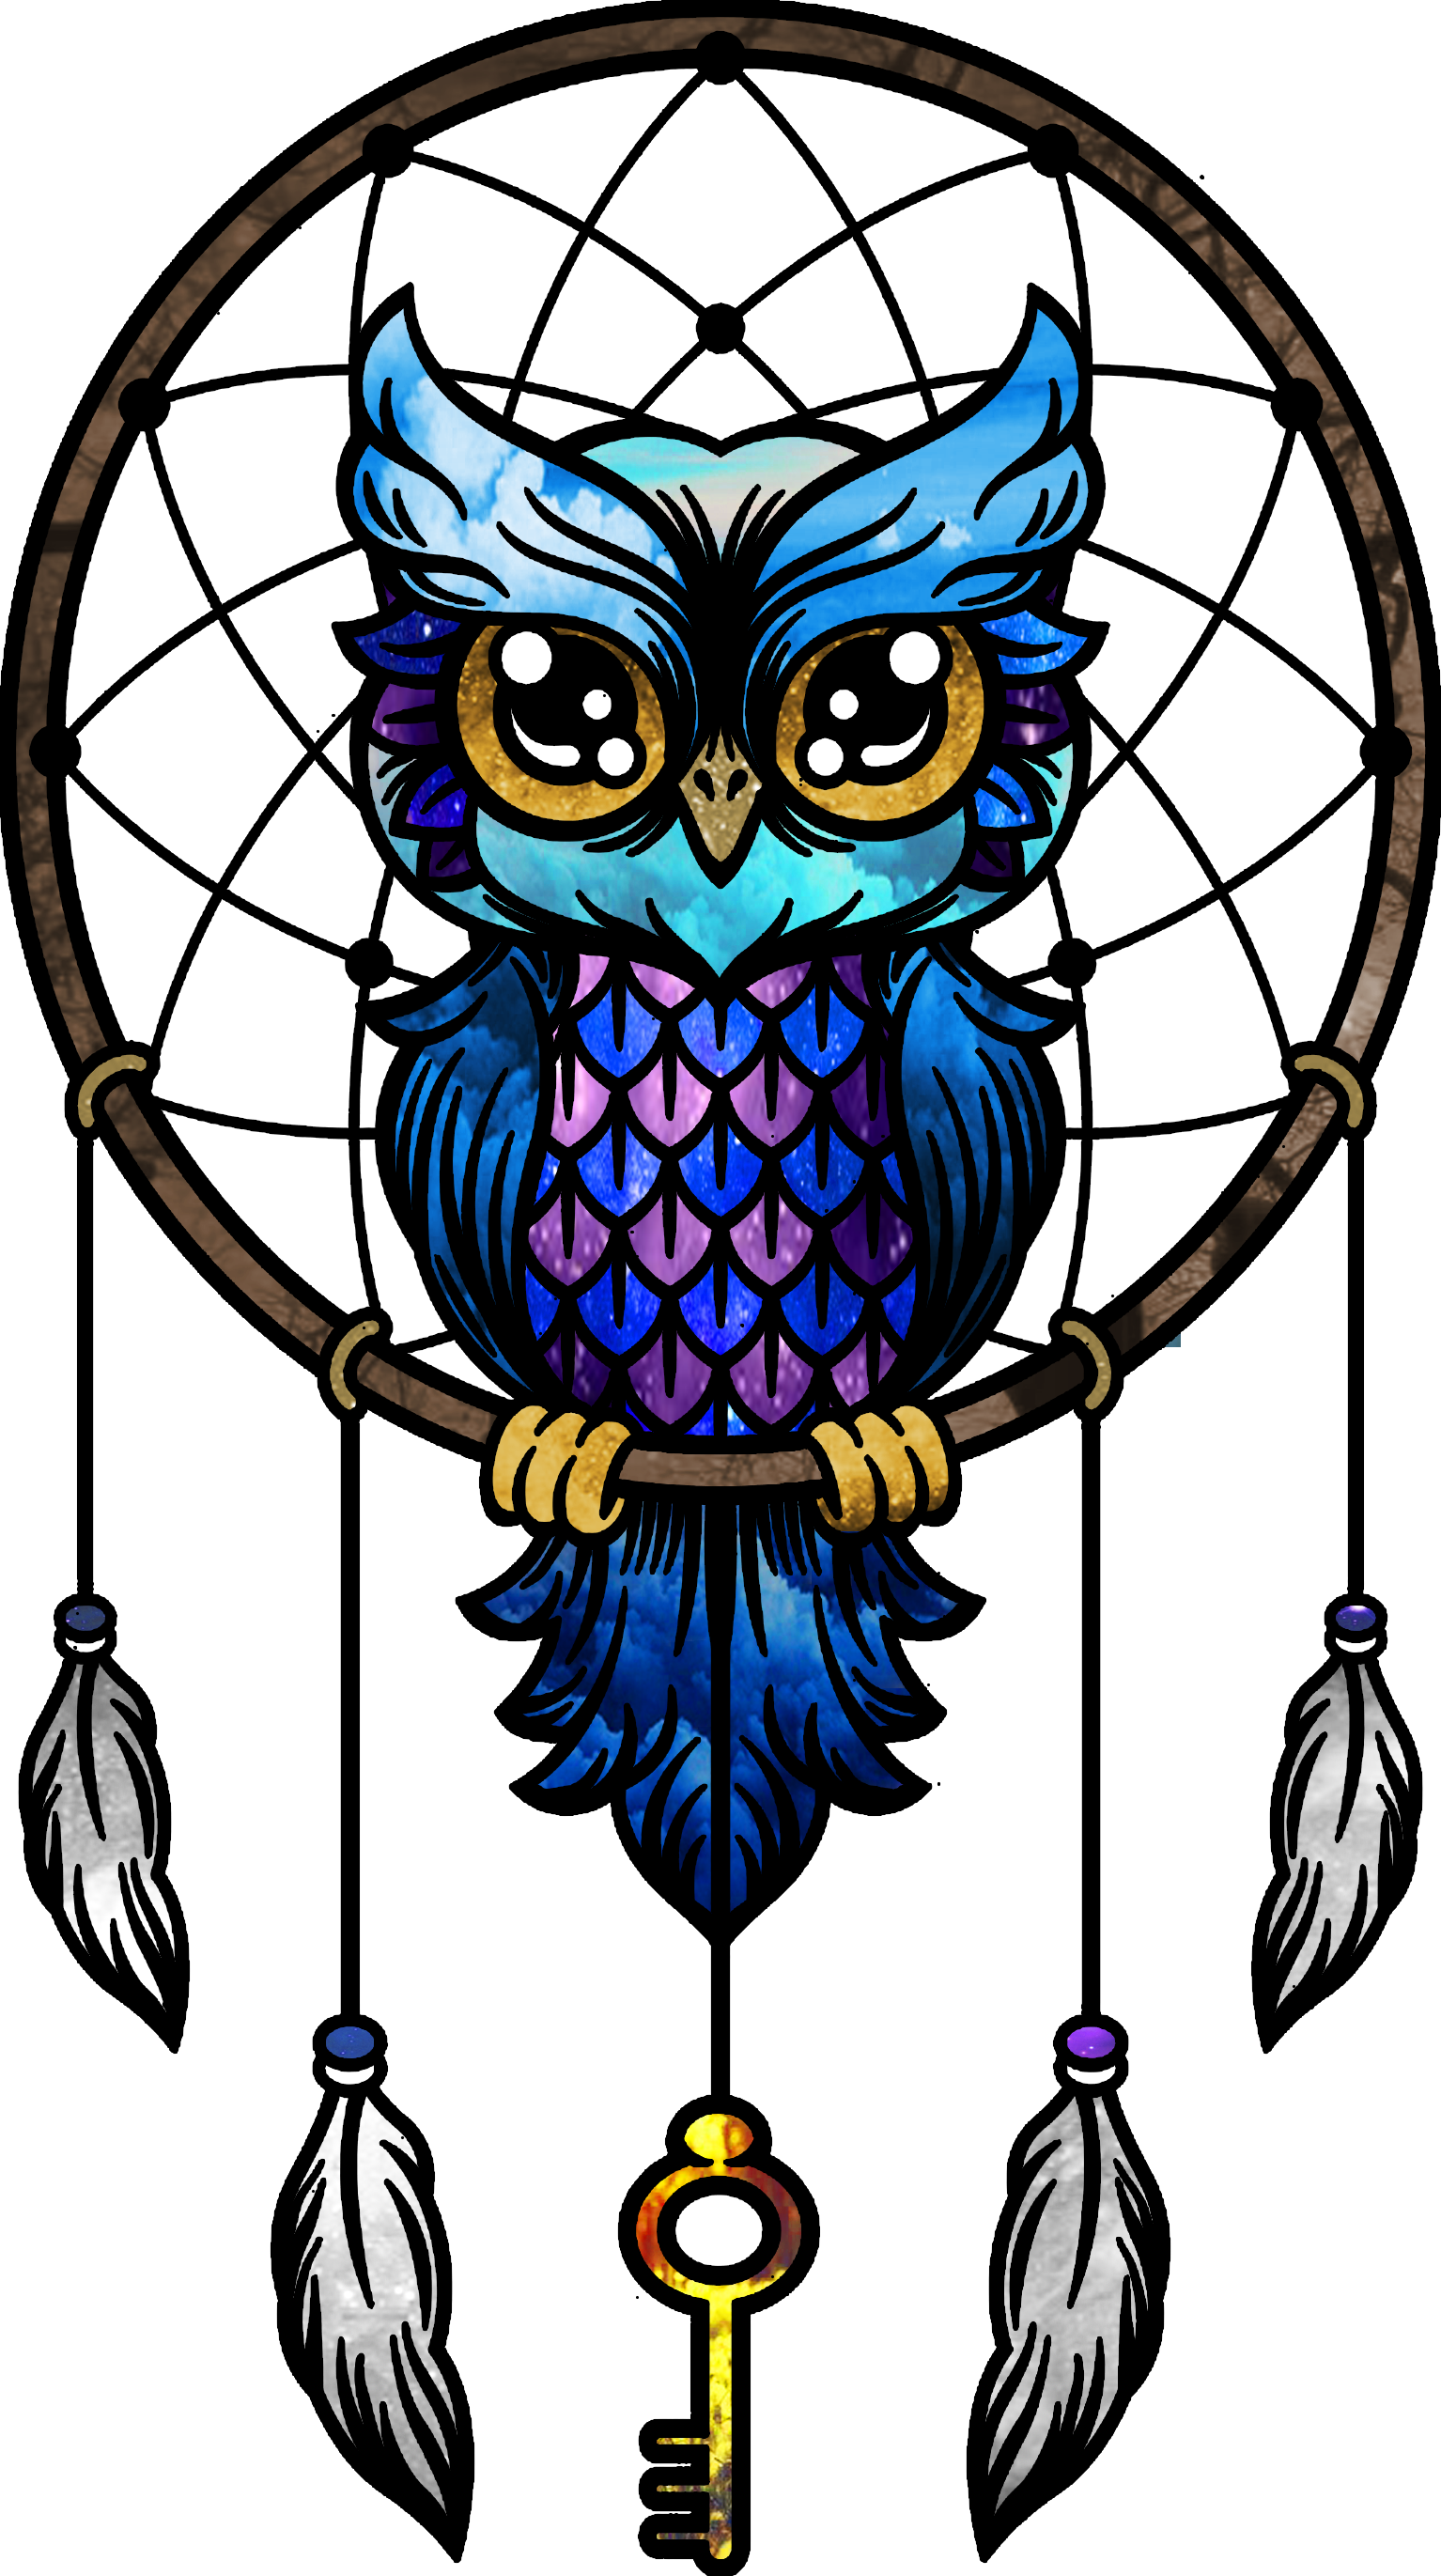 Owl Little Paper Drawing Dreamcatcher Download HQ PNG PNG Image